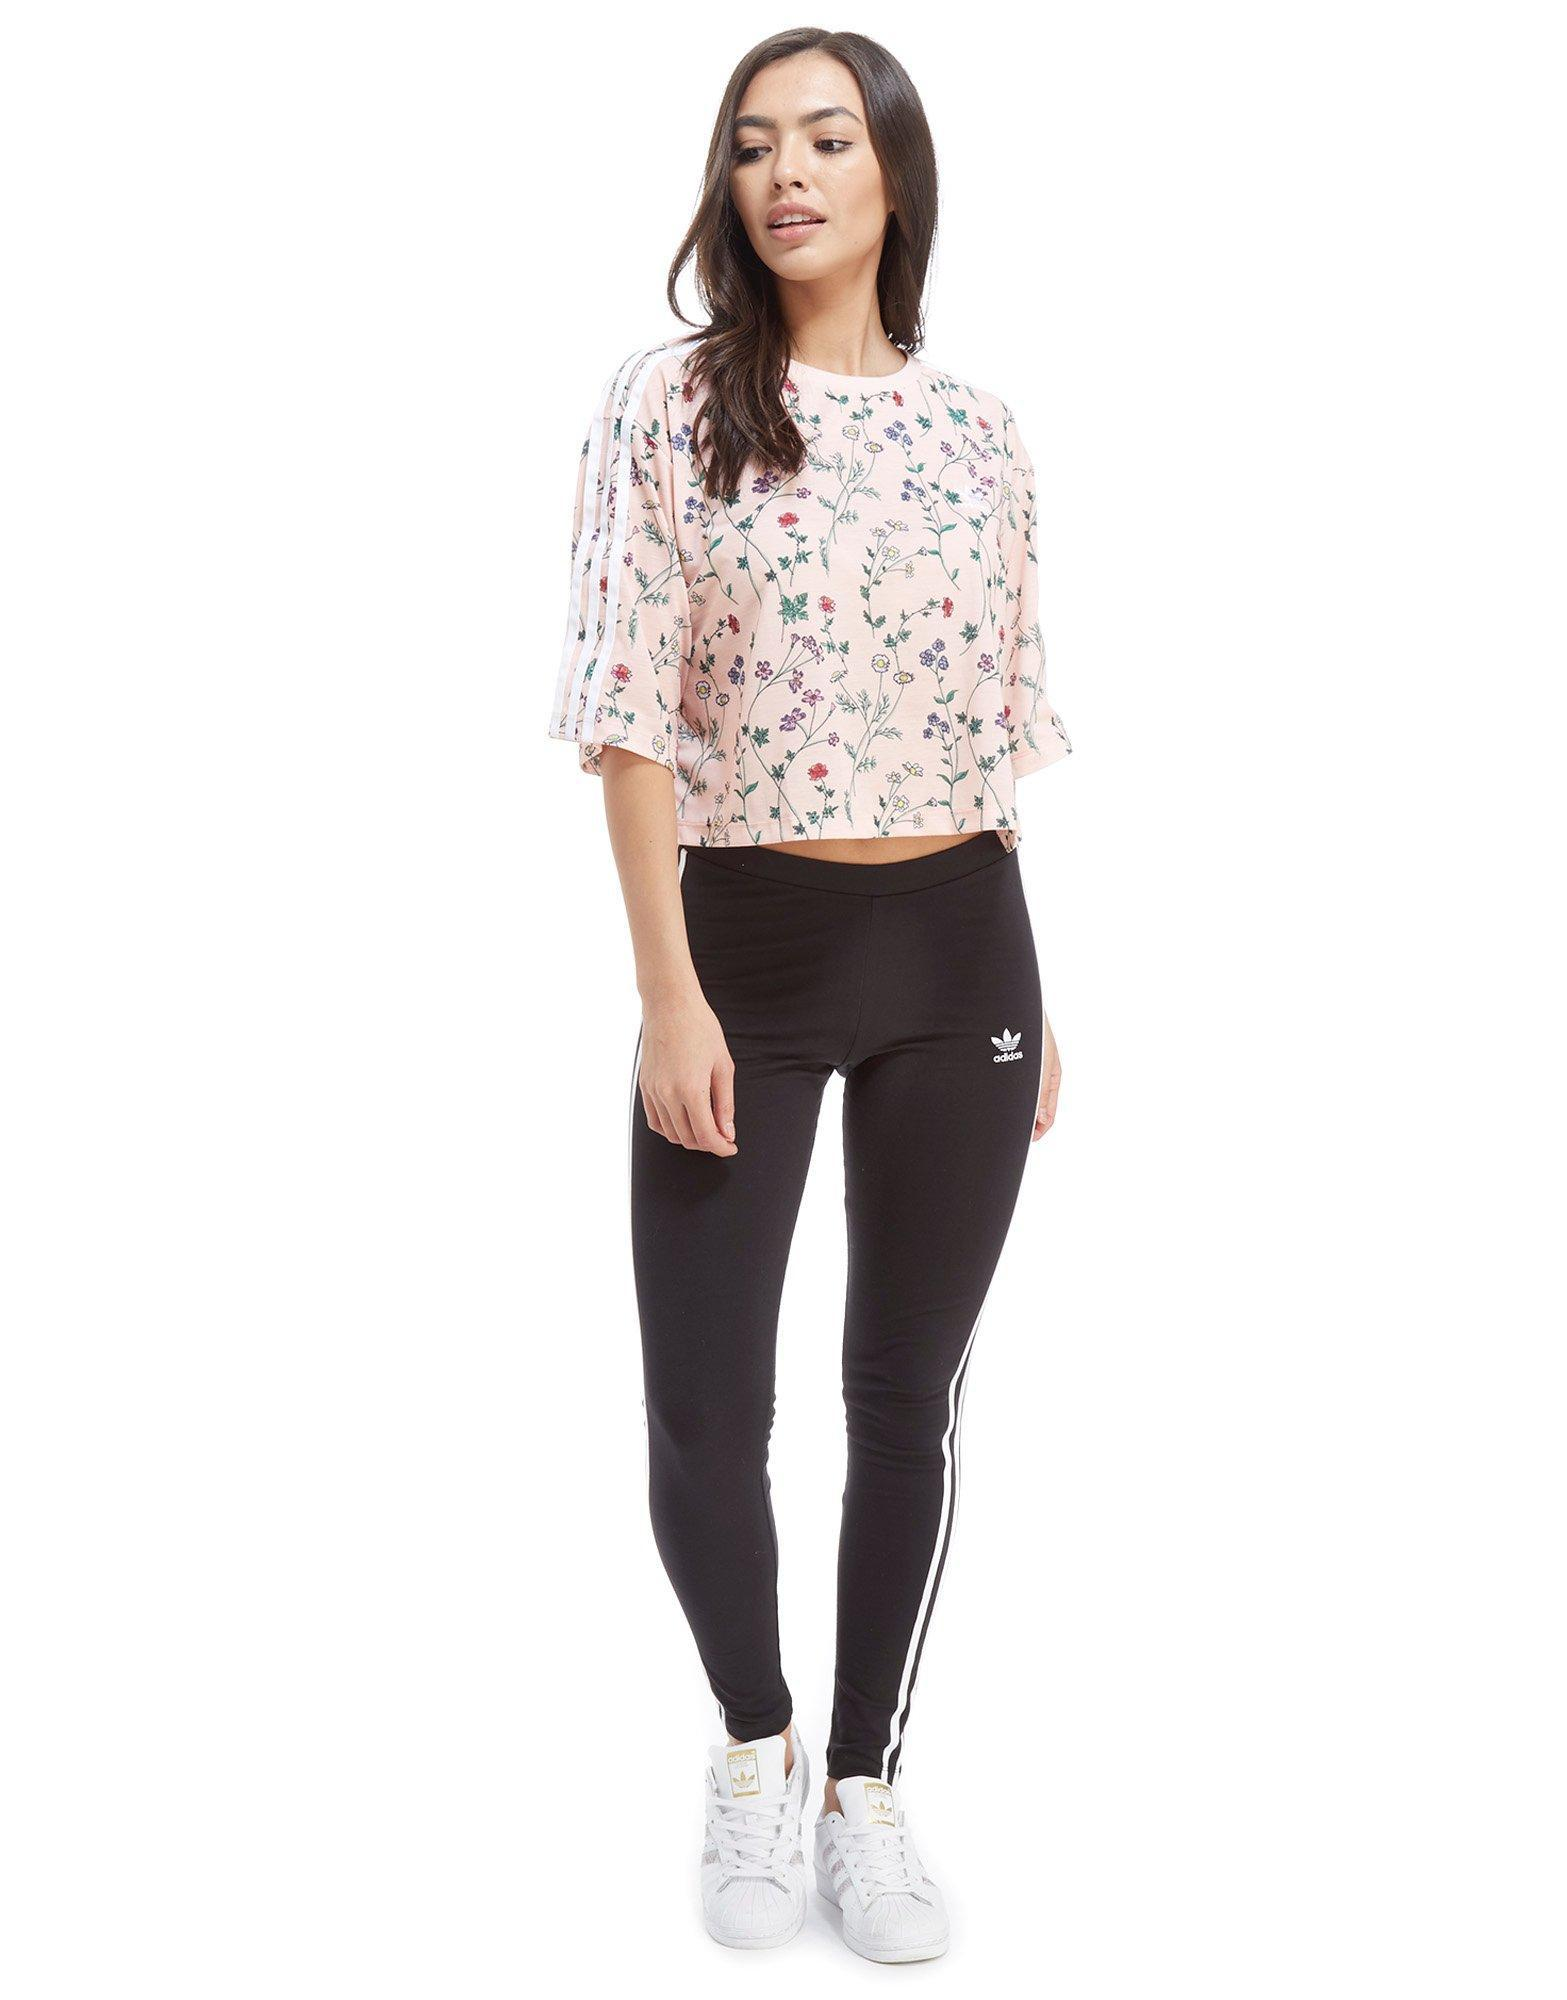 59bfd524affc adidas Originals All Over Print Floral Crop T-shirt in Pink - Lyst